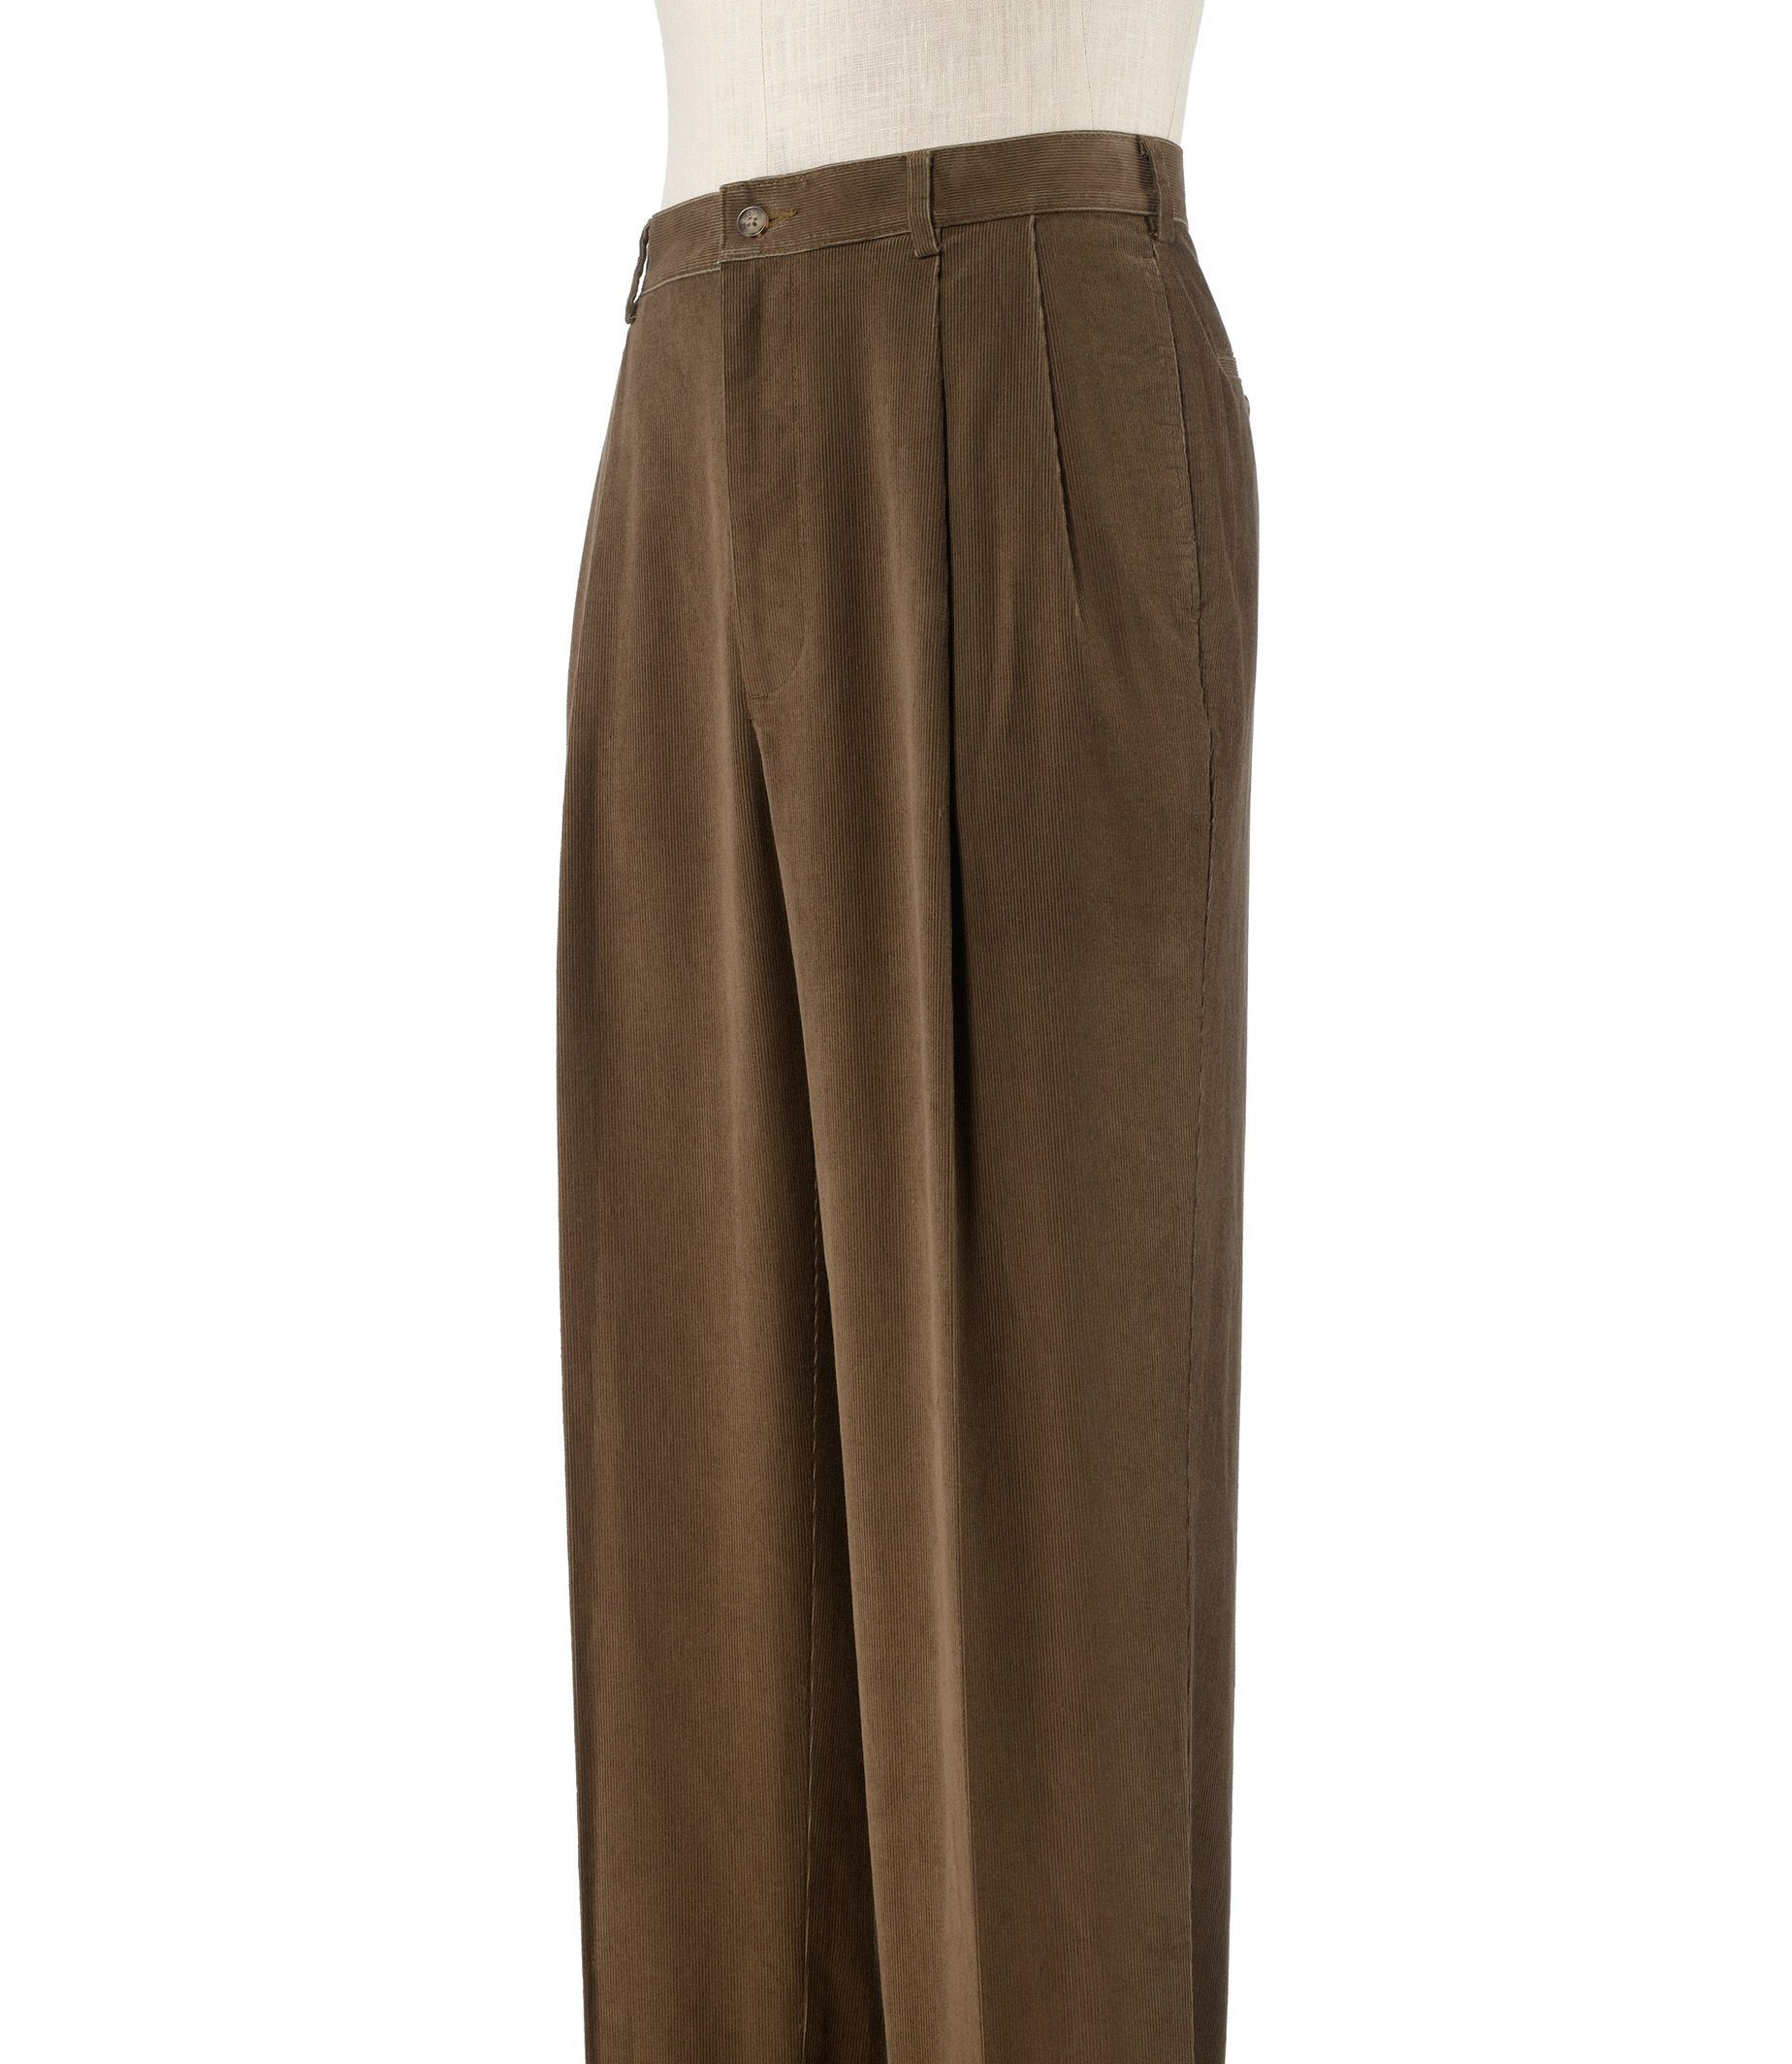 Bank Corduroy Jos A Bank Executive Traditional Fit Pleated Corduroy